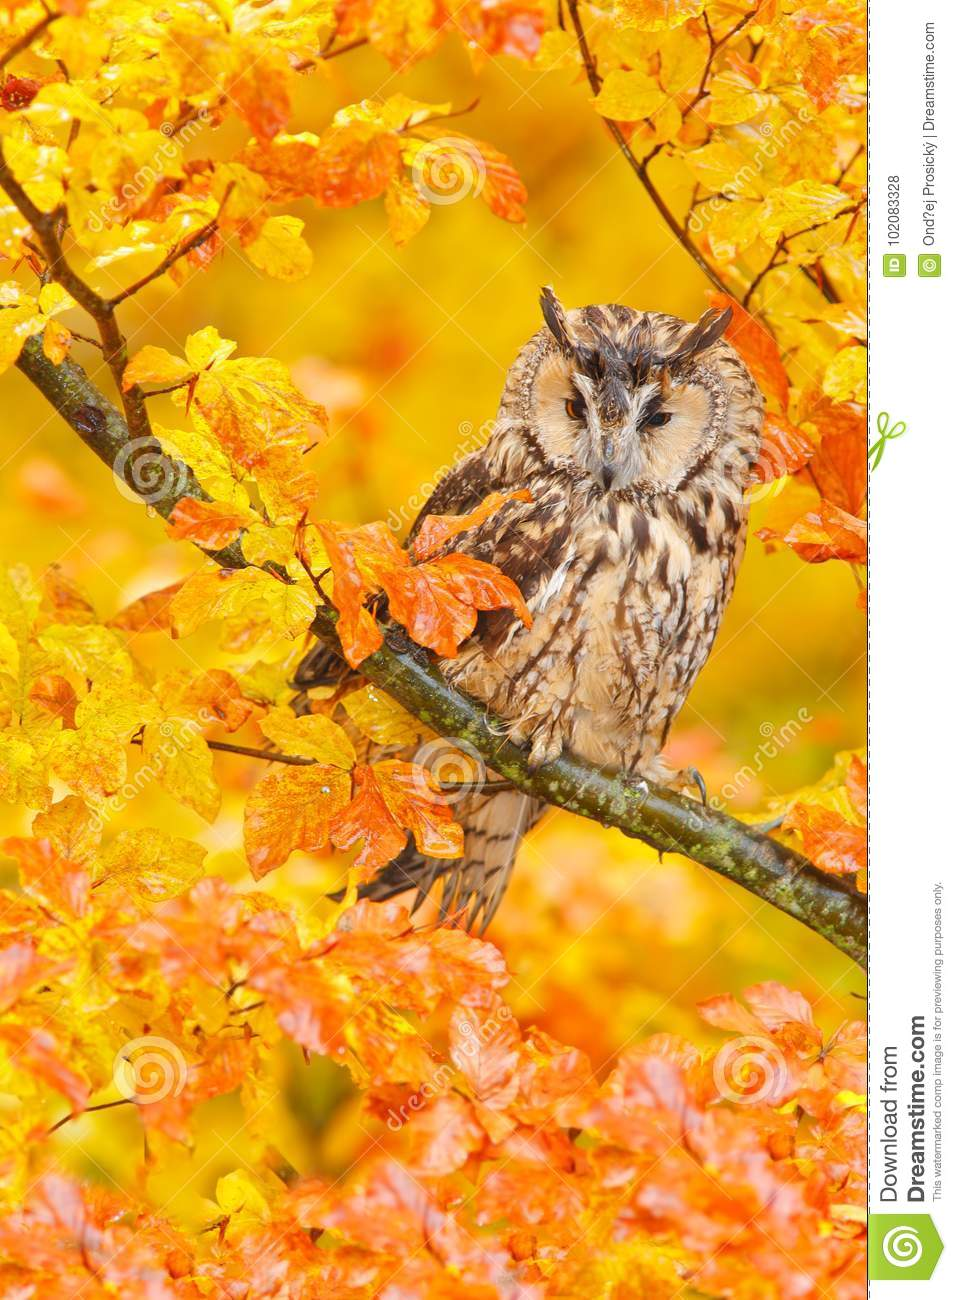 Bird in orange forest, yellow leaves. Long-eared Owl with orange oak leaves during autumn. Wildlife scene fro nature, Sweden.